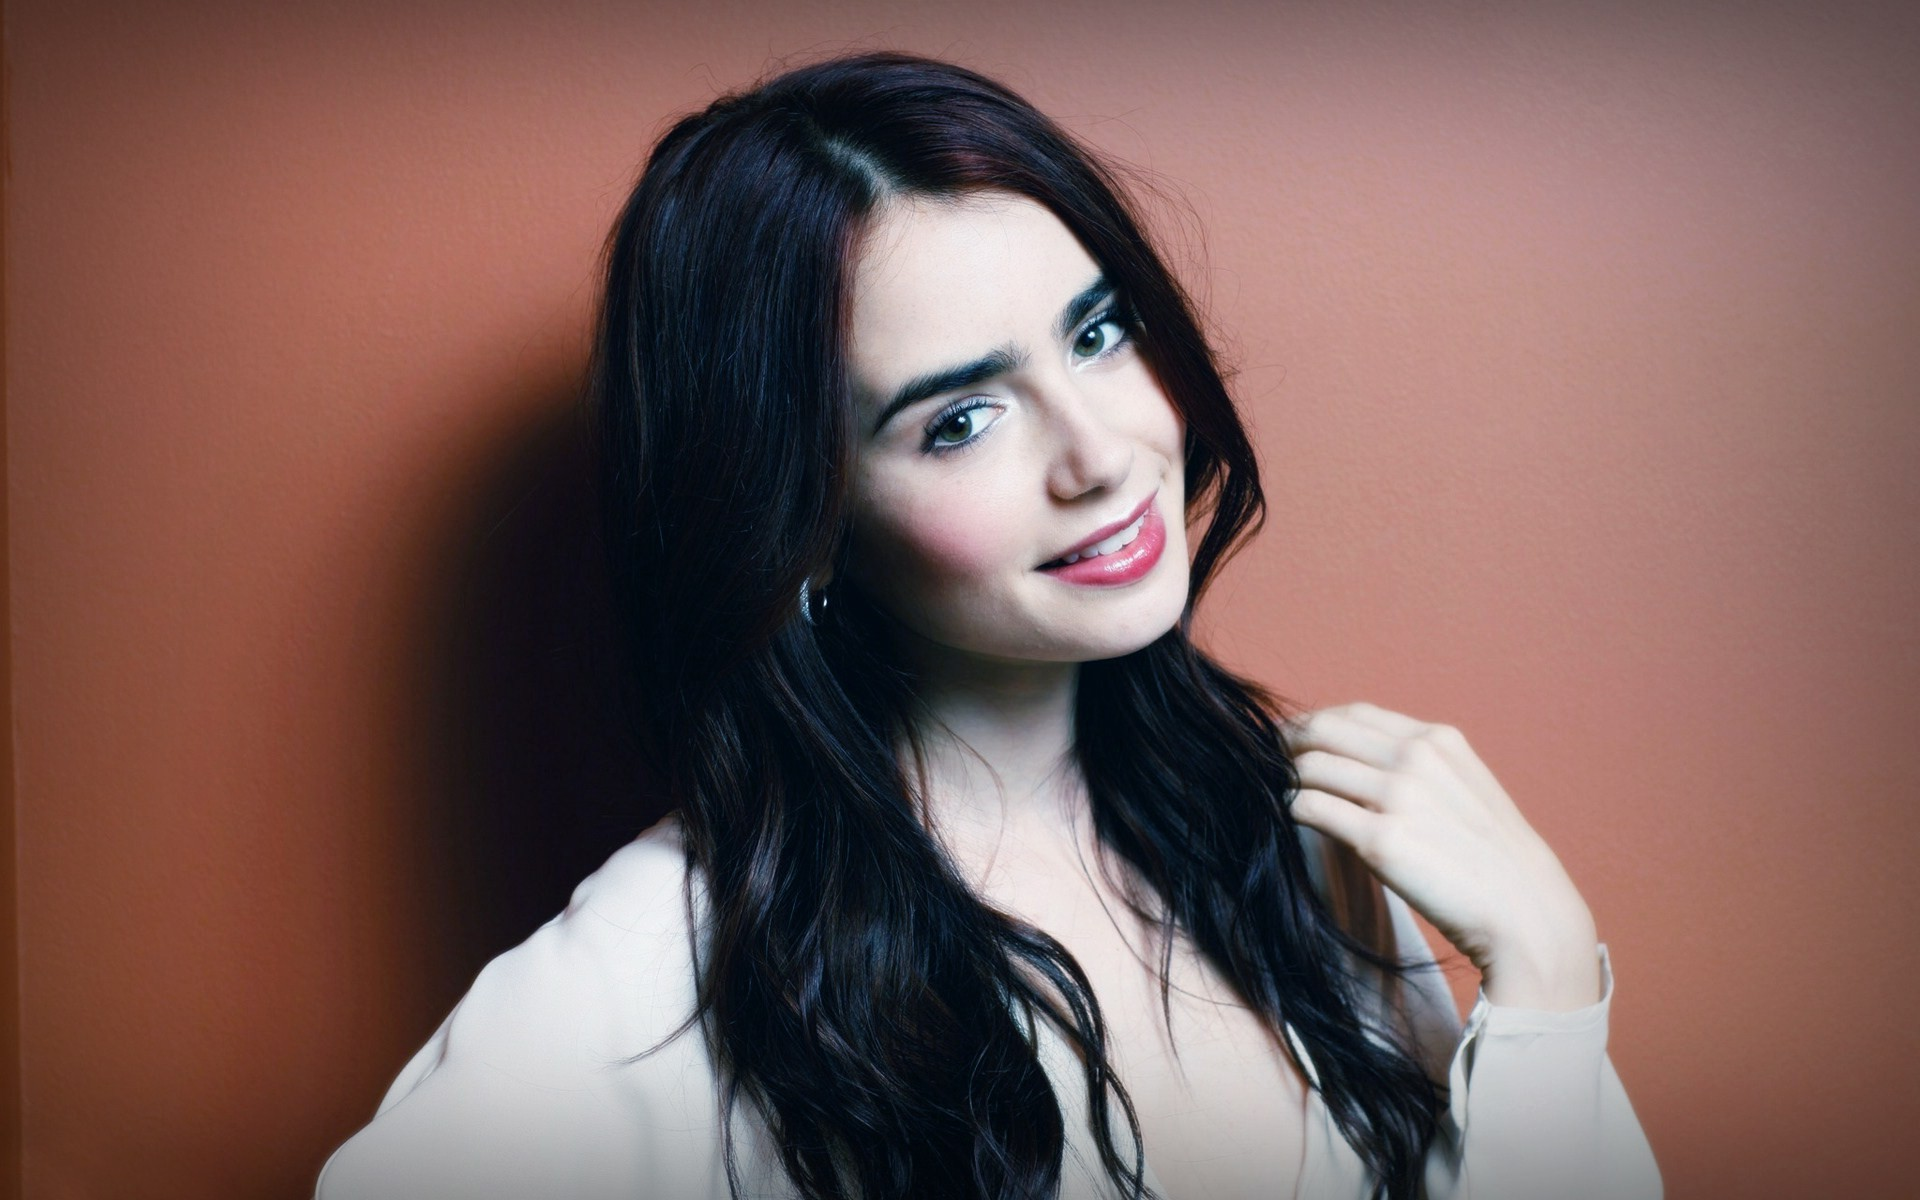 lily collins, actress, brunette, face, smile wallpaper | hd wallpapers